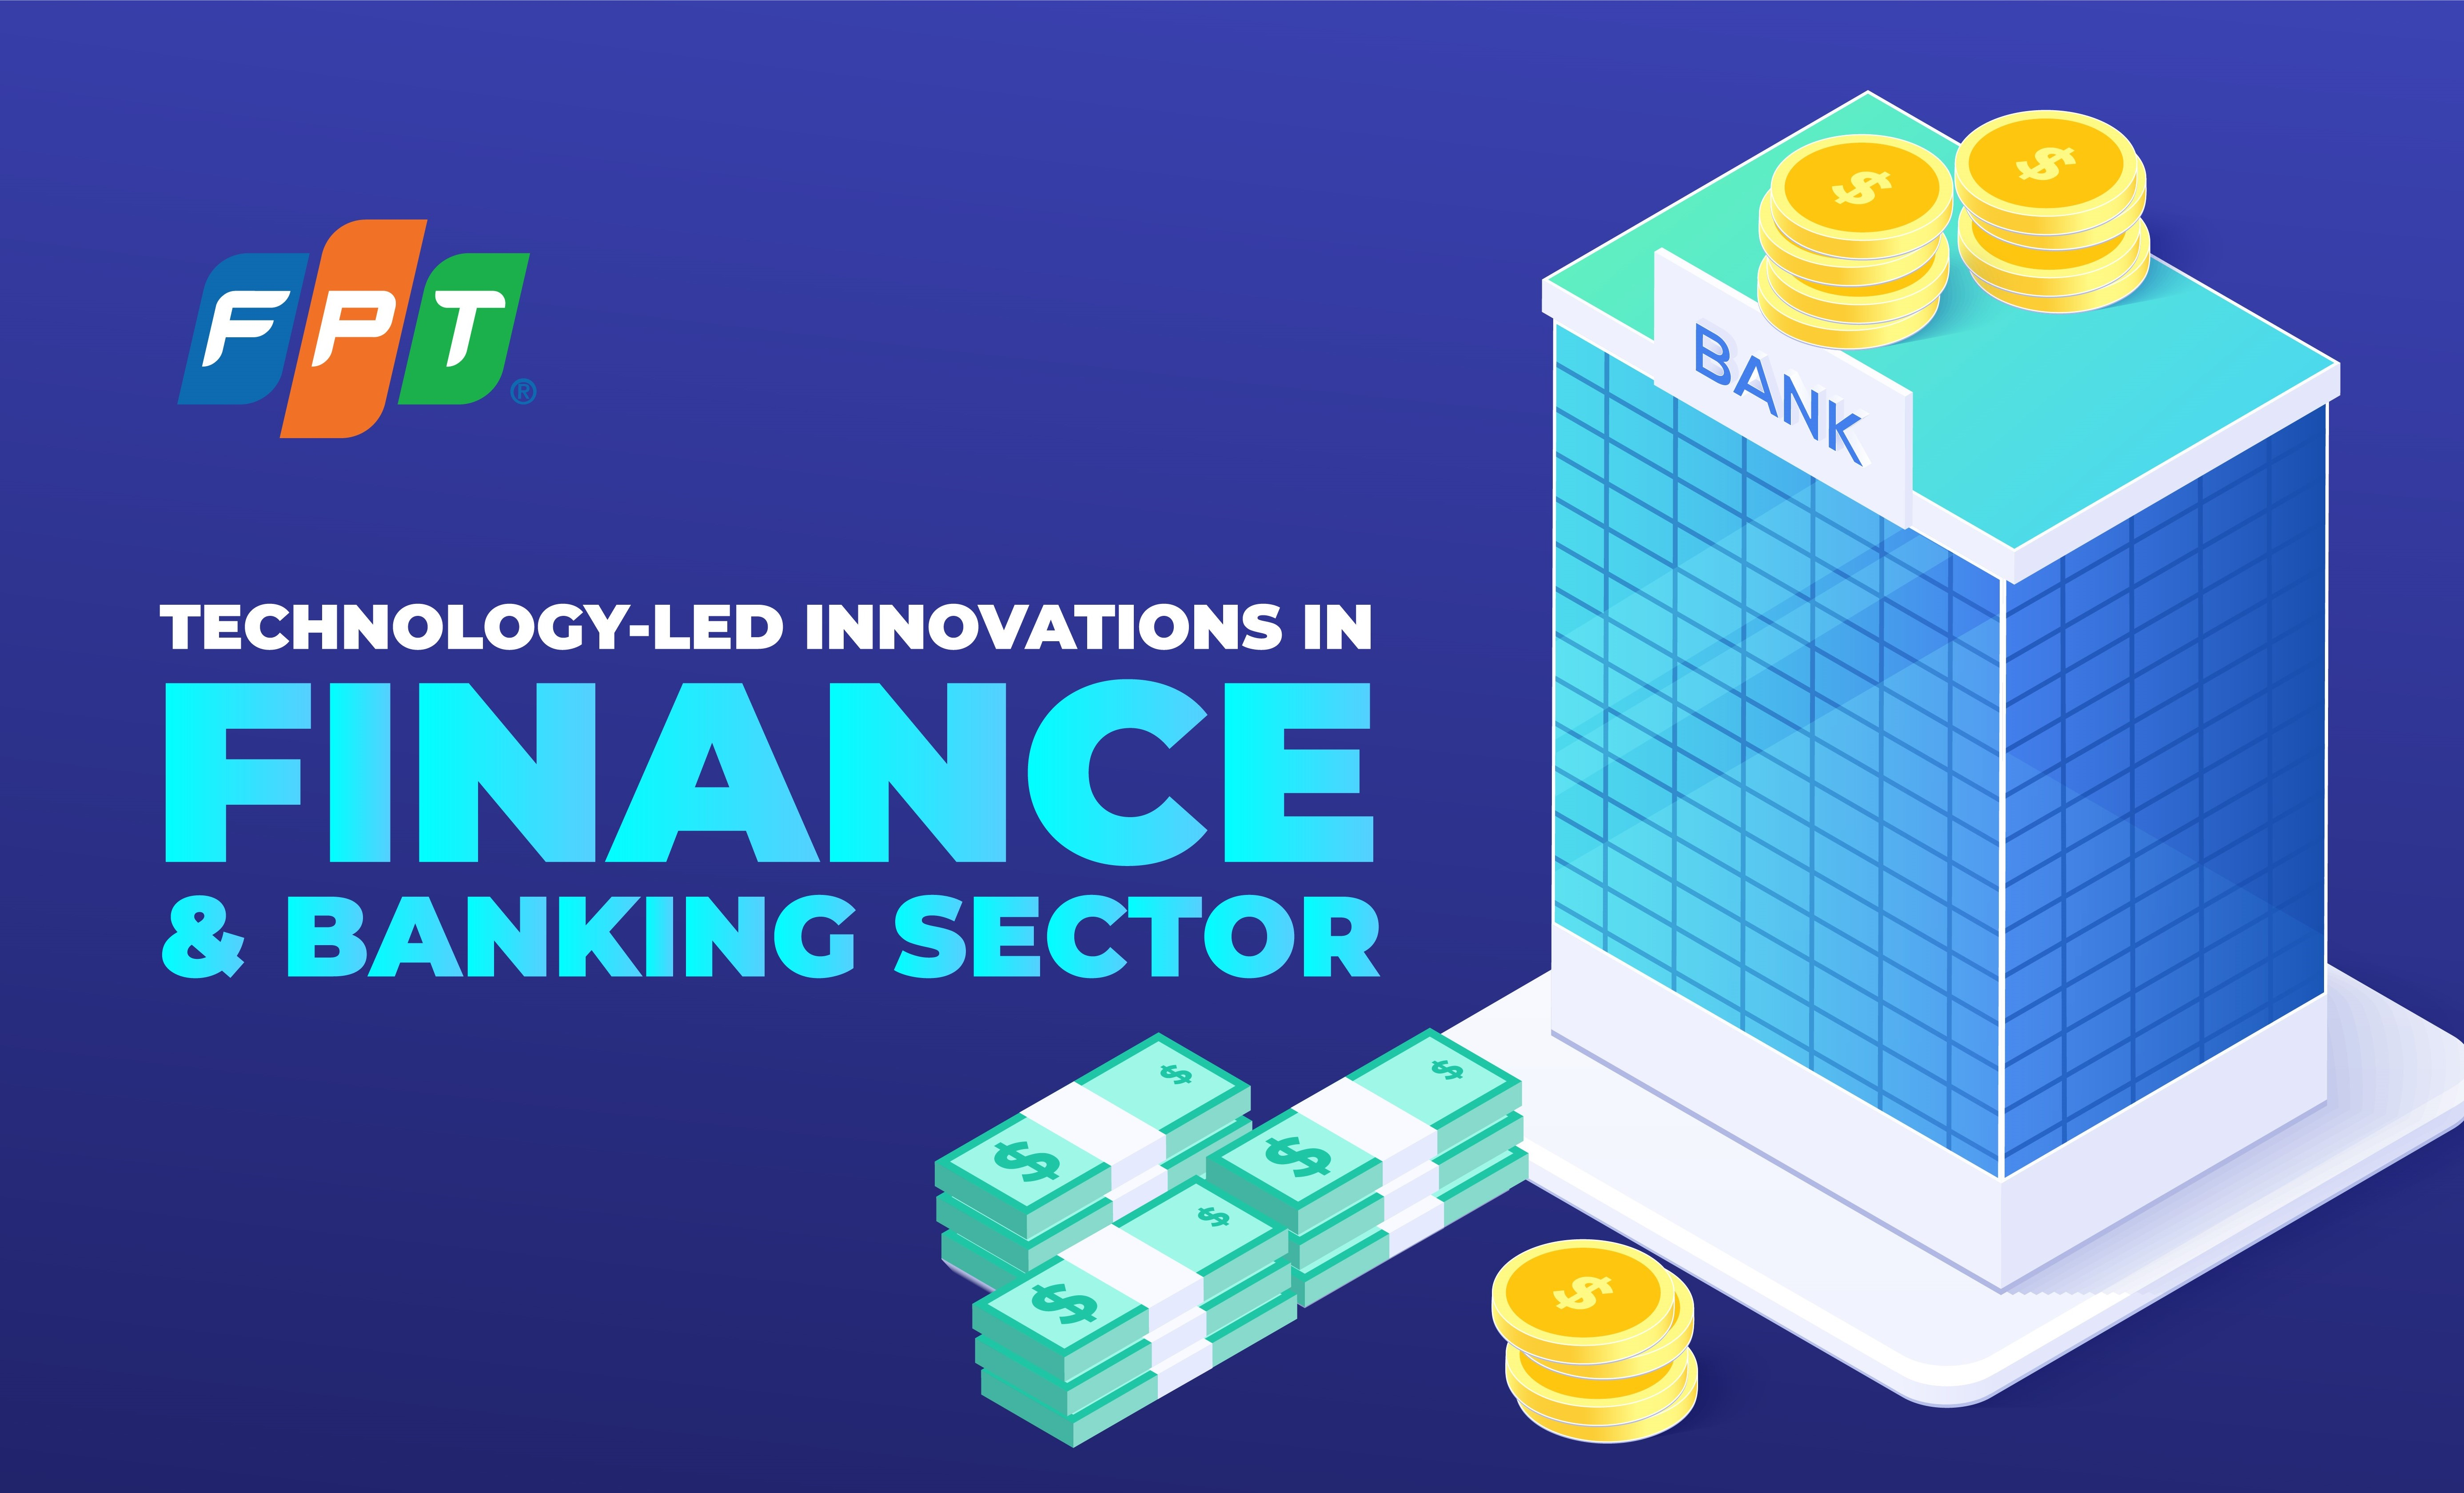 Technology-led Innovations in Finance & Banking Sector